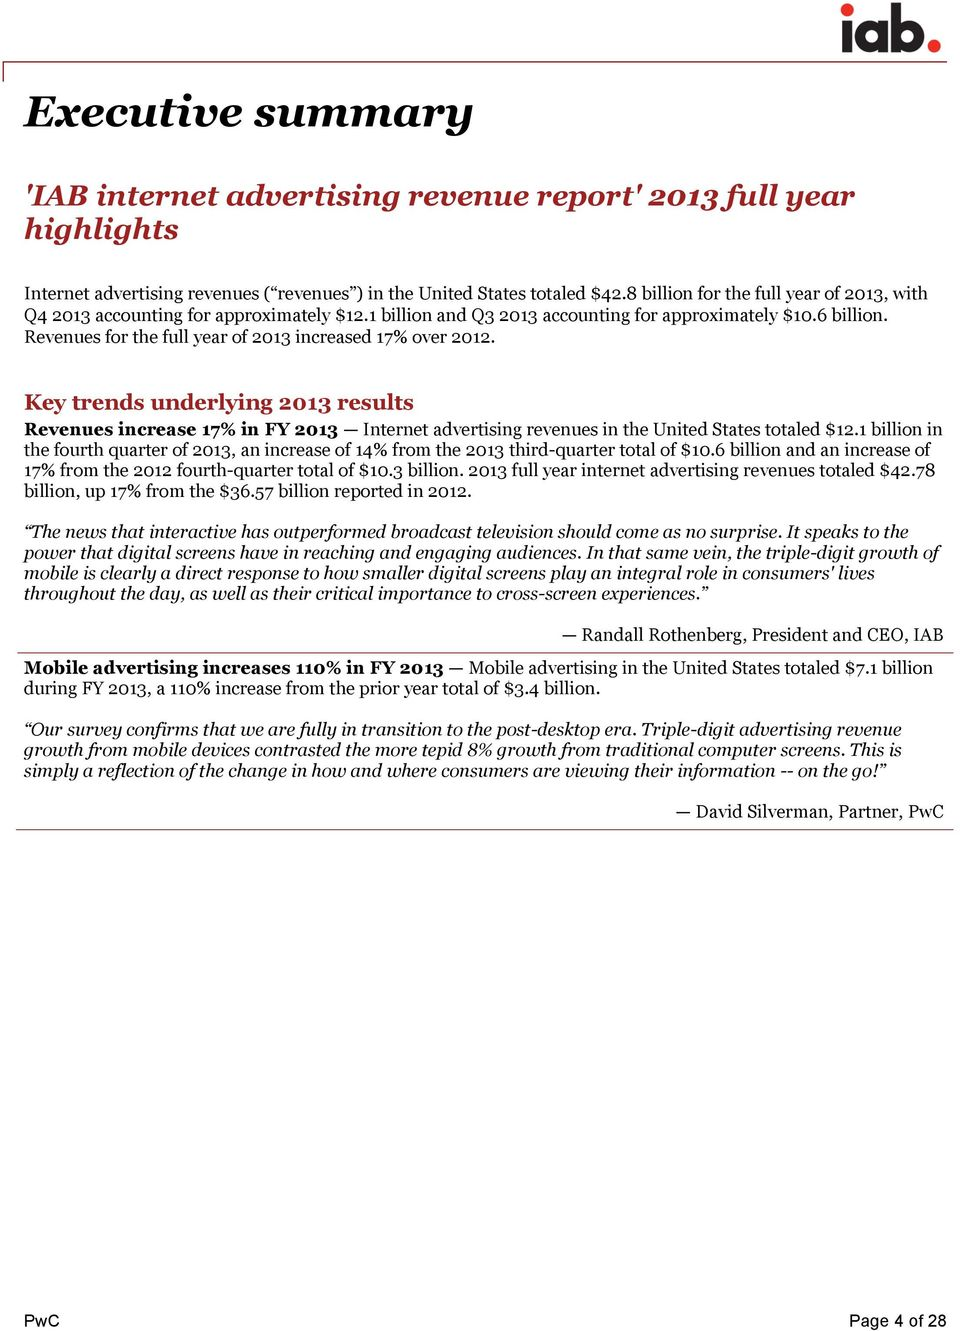 Revenues for the full year of 2013 increased 17% over 2012. Key trends underlying 2013 results Revenues increase 17% in FY 2013 Internet advertising revenues in the United States totaled $12.